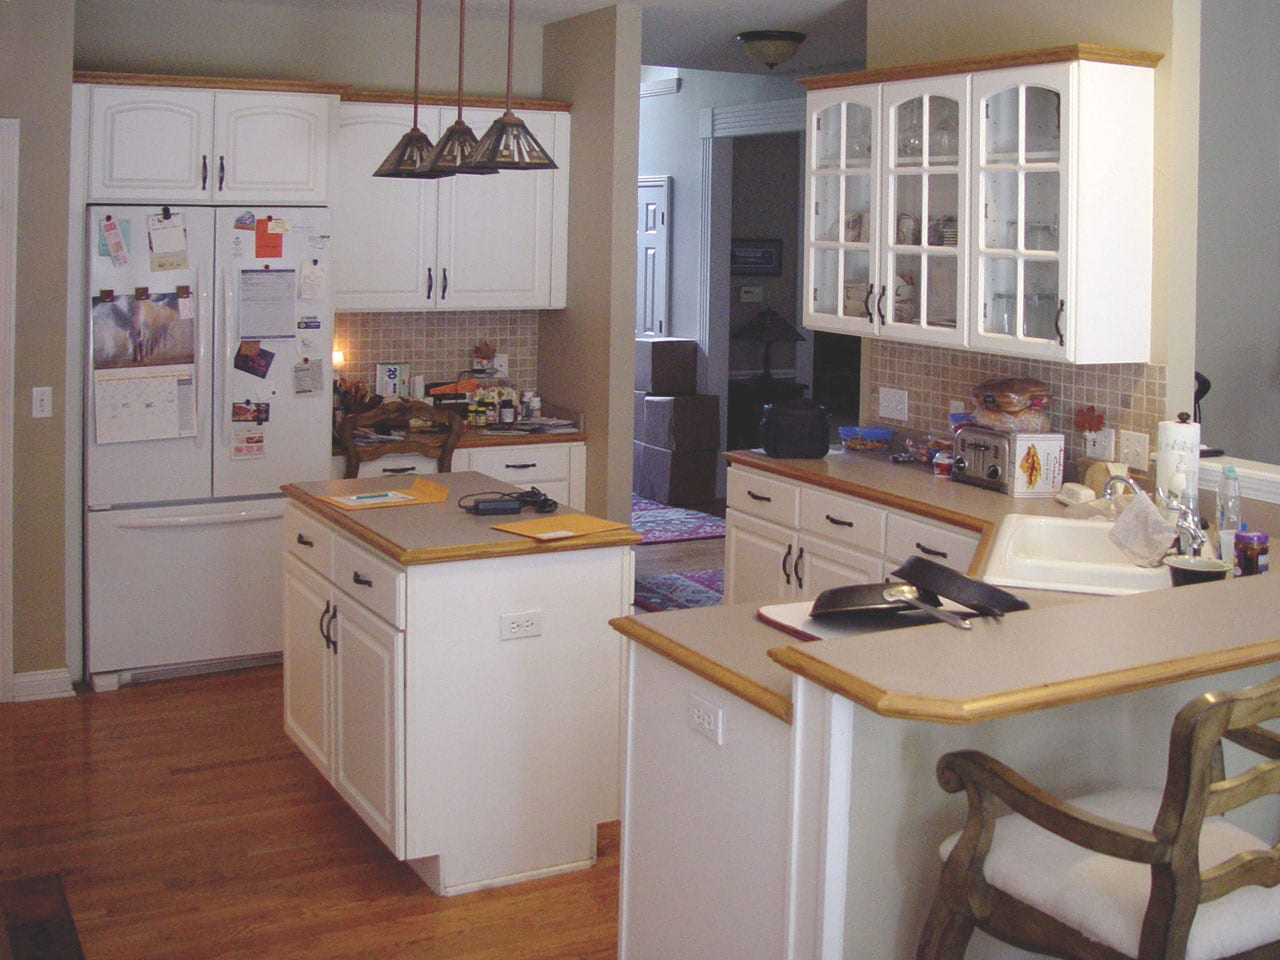 a picture a and old kitchen in LaRose BEFORE refacing